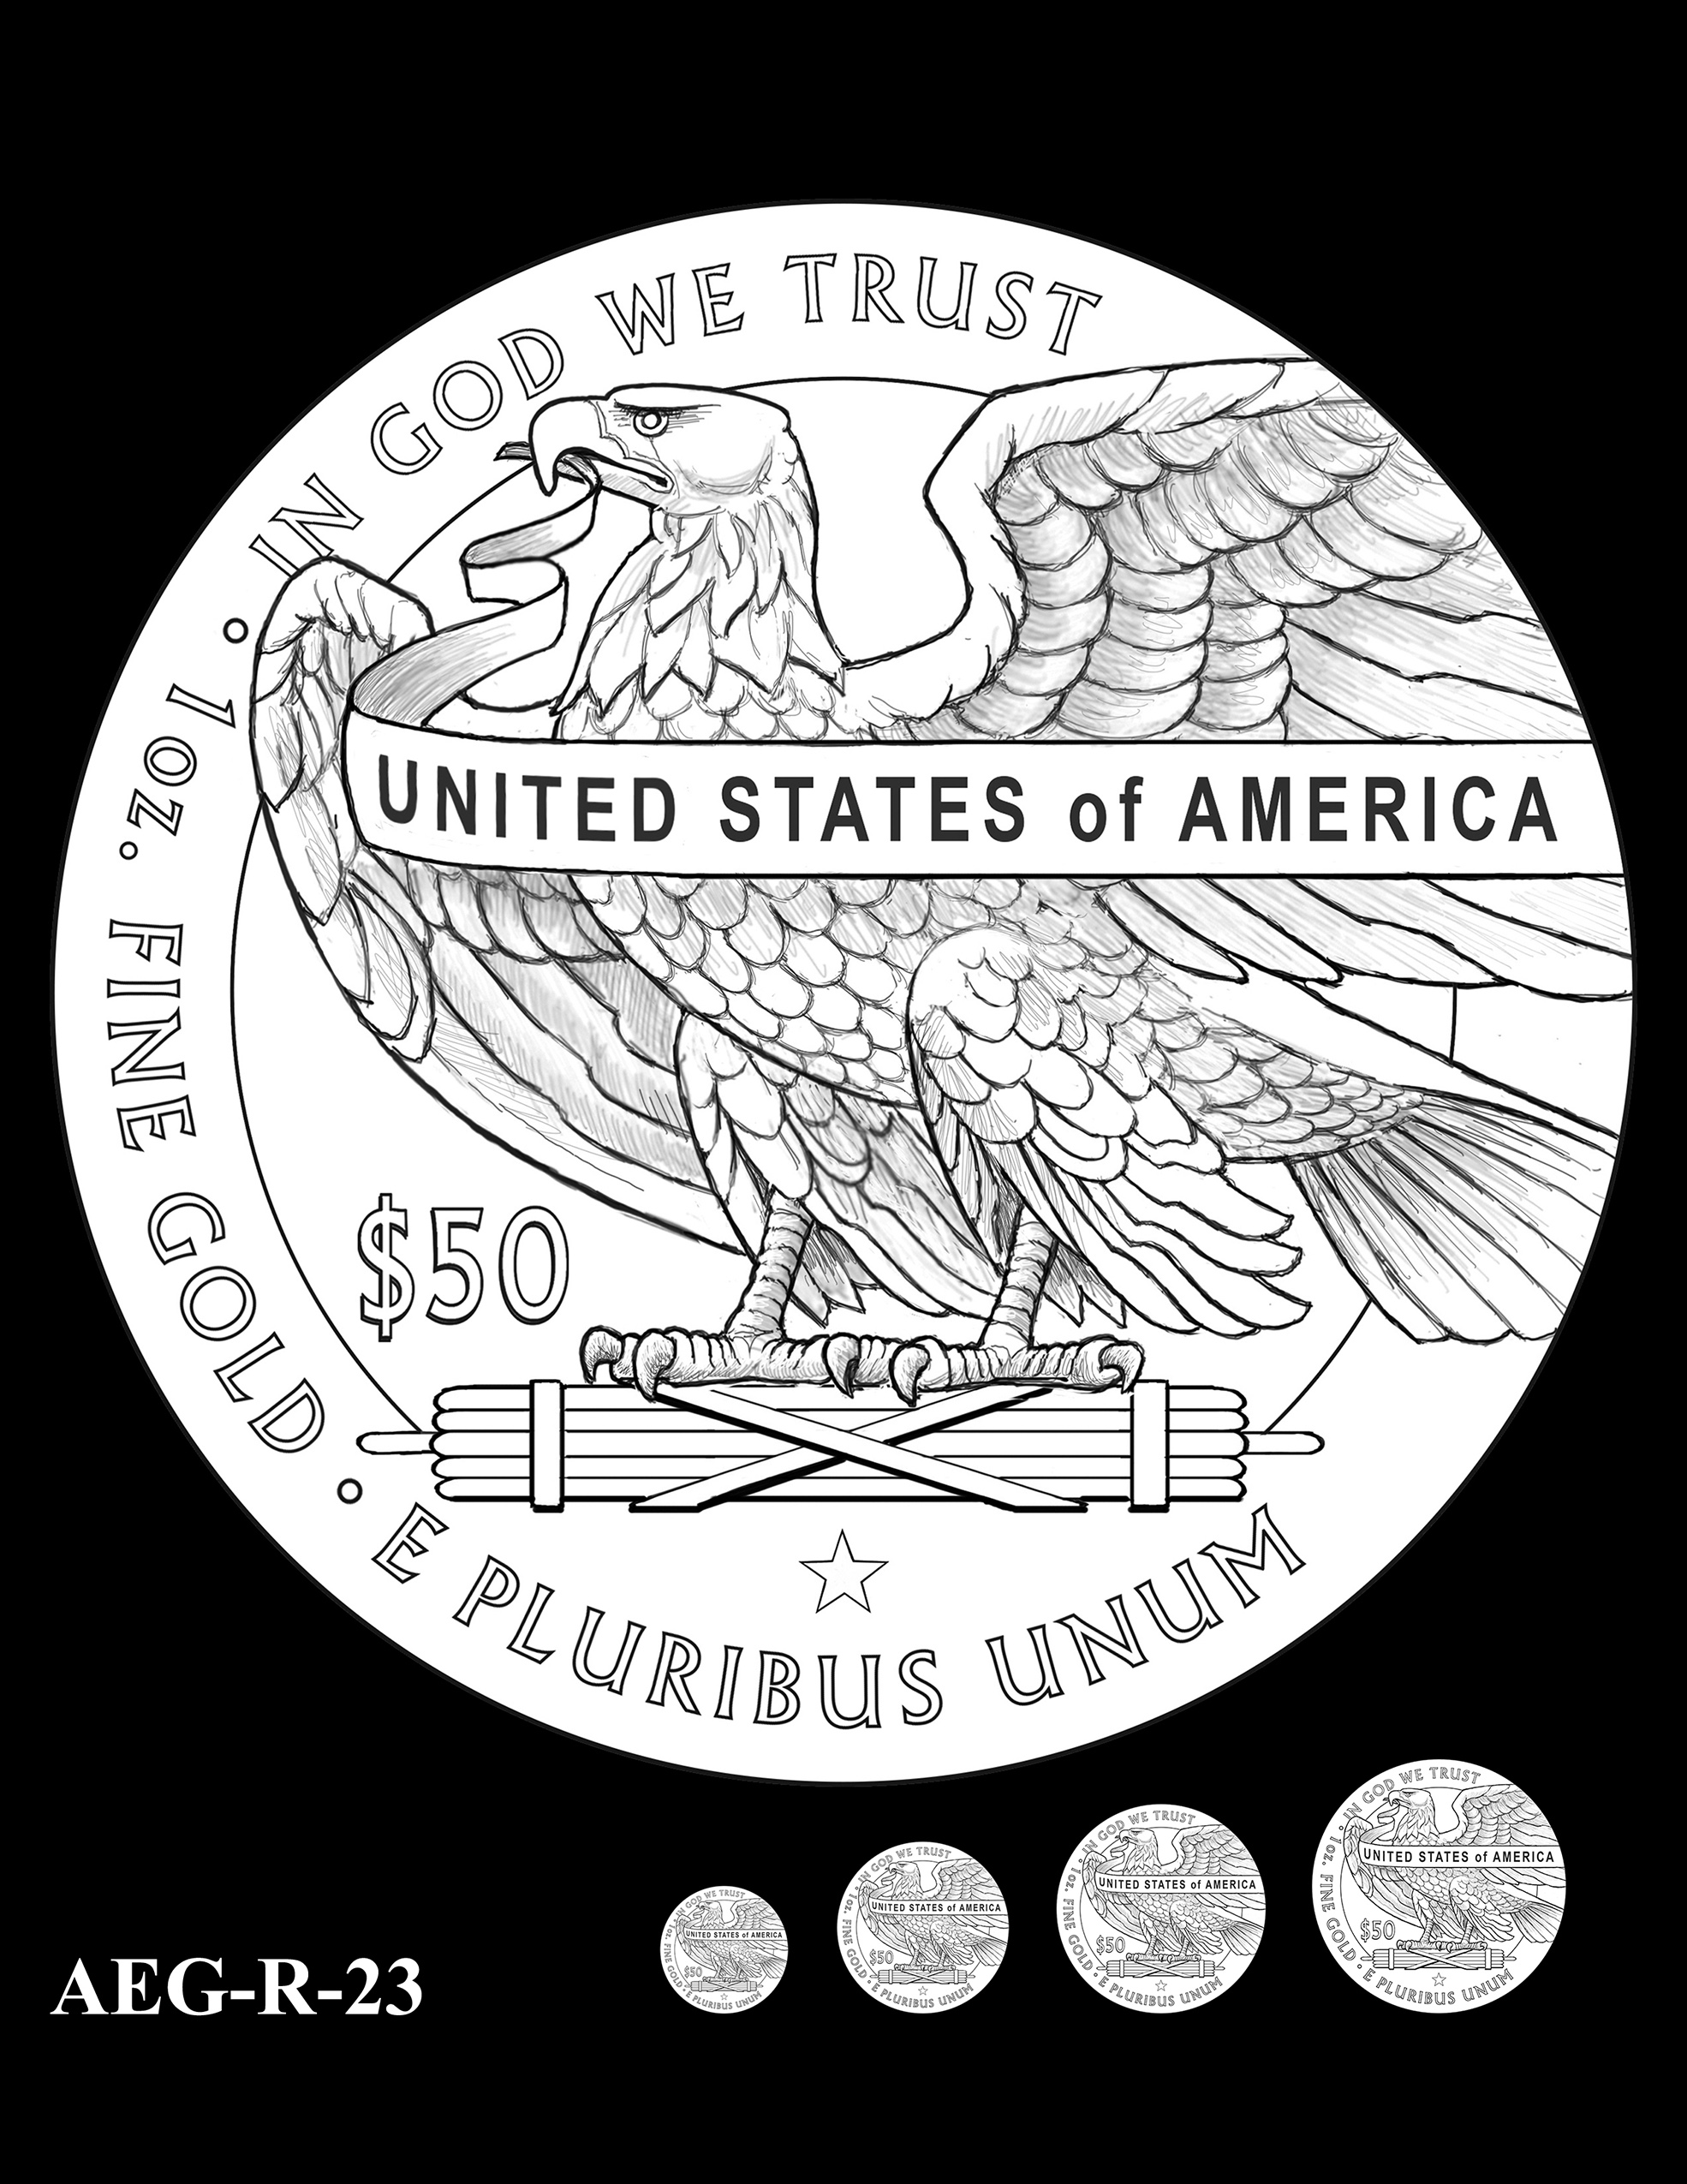 AEG-R-23 -- American Eagle Proof and Bullion Gold Coin - Reverse